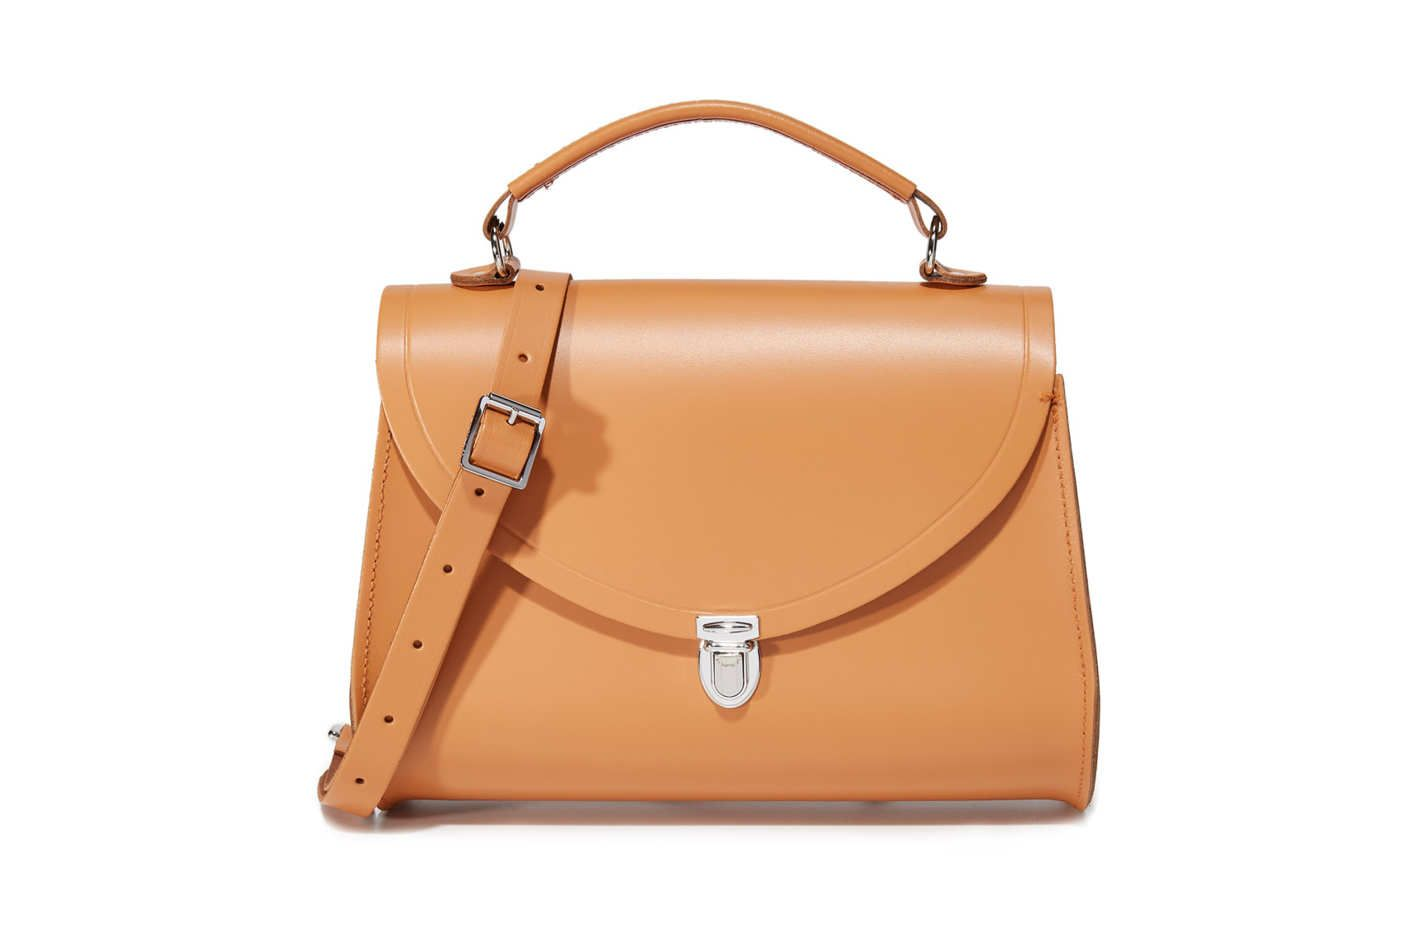 78f2596ab547 12 Impressive-Looking Bags for Your Next Big Meeting | Style | Bags ...